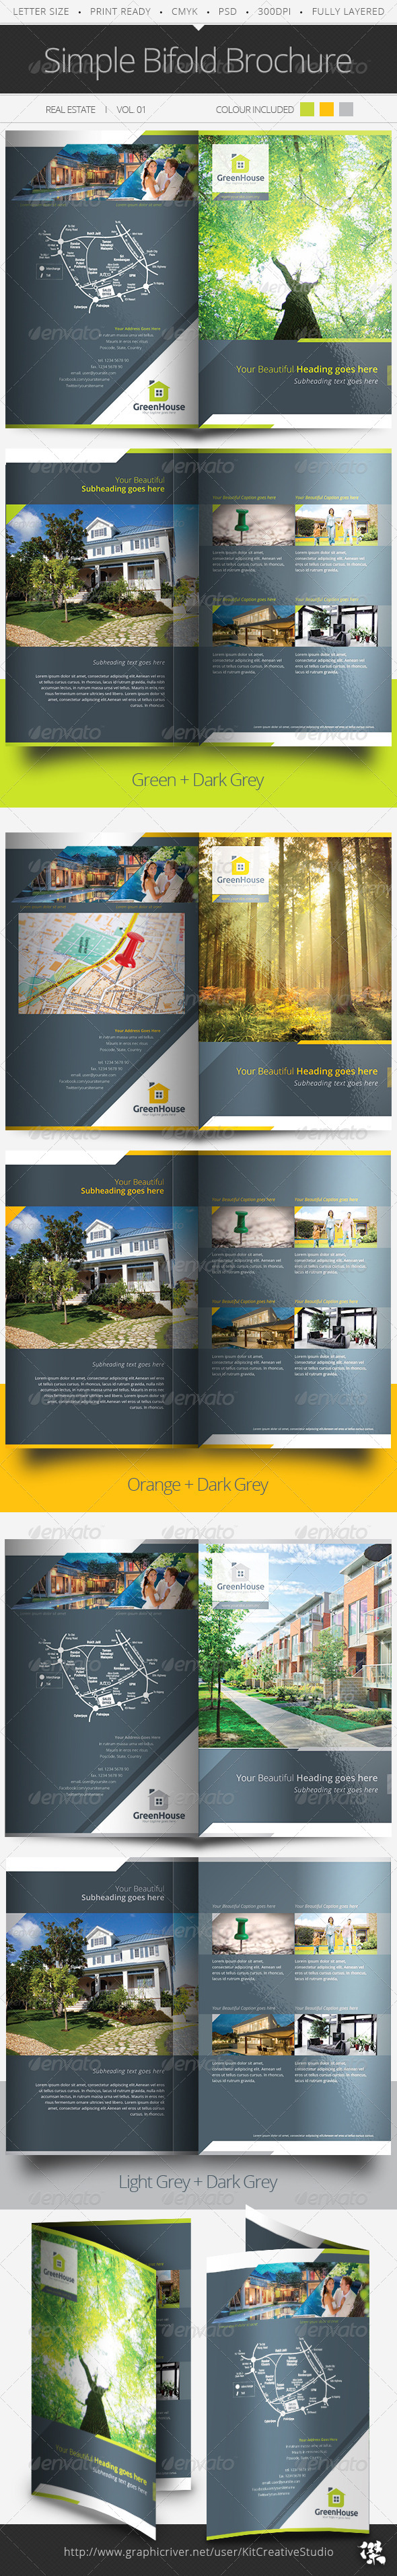 Simple Bifold Brochure Vol.01 - Corporate Brochures